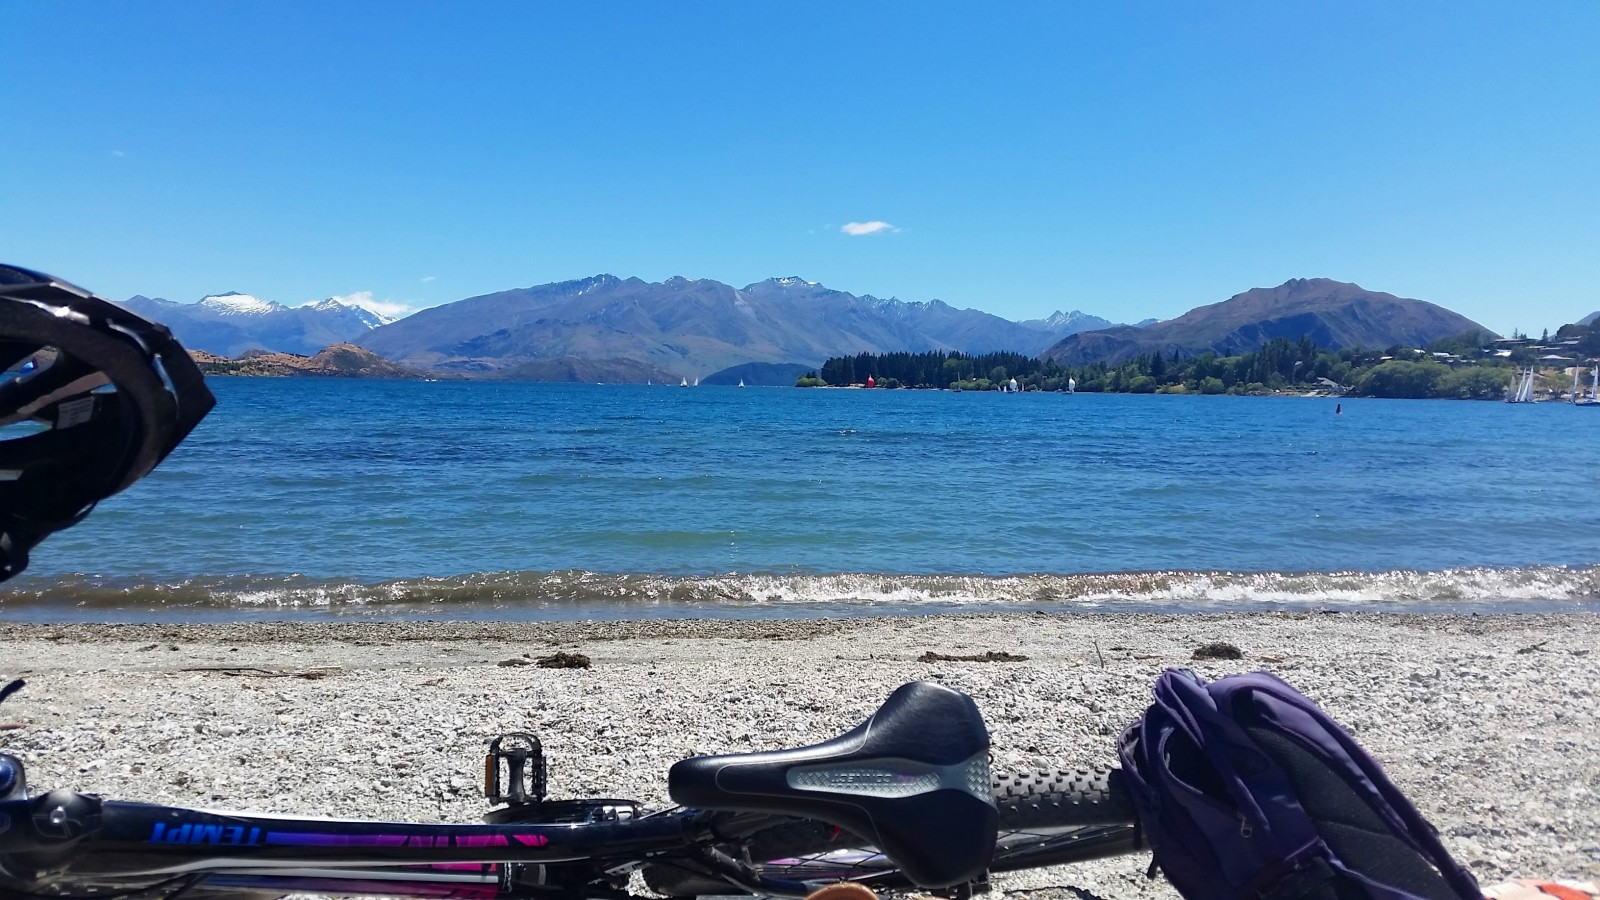 mountain biking along the lake side at Wanaka on a sunny day